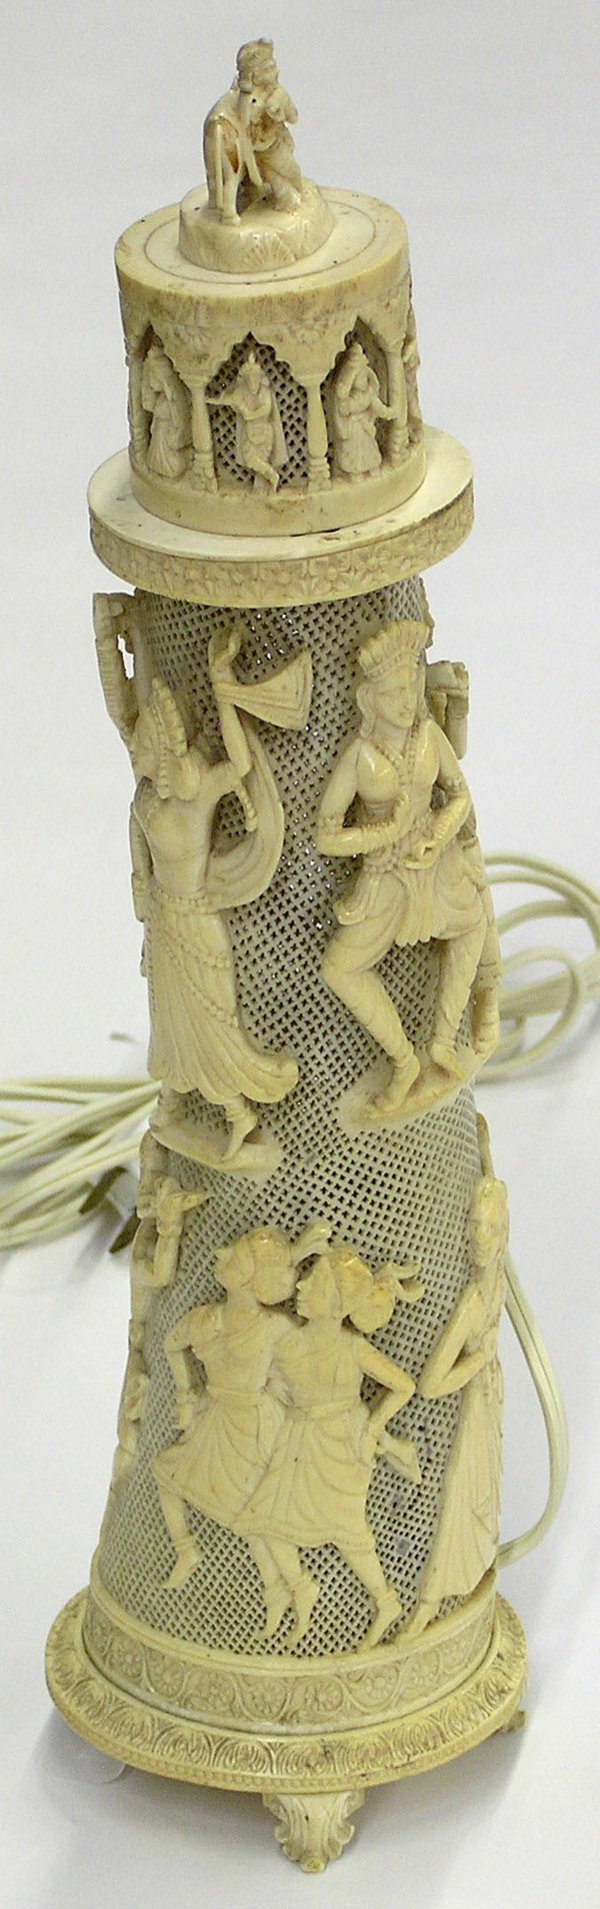 4019: East Indian Elephant Ivory Lamp